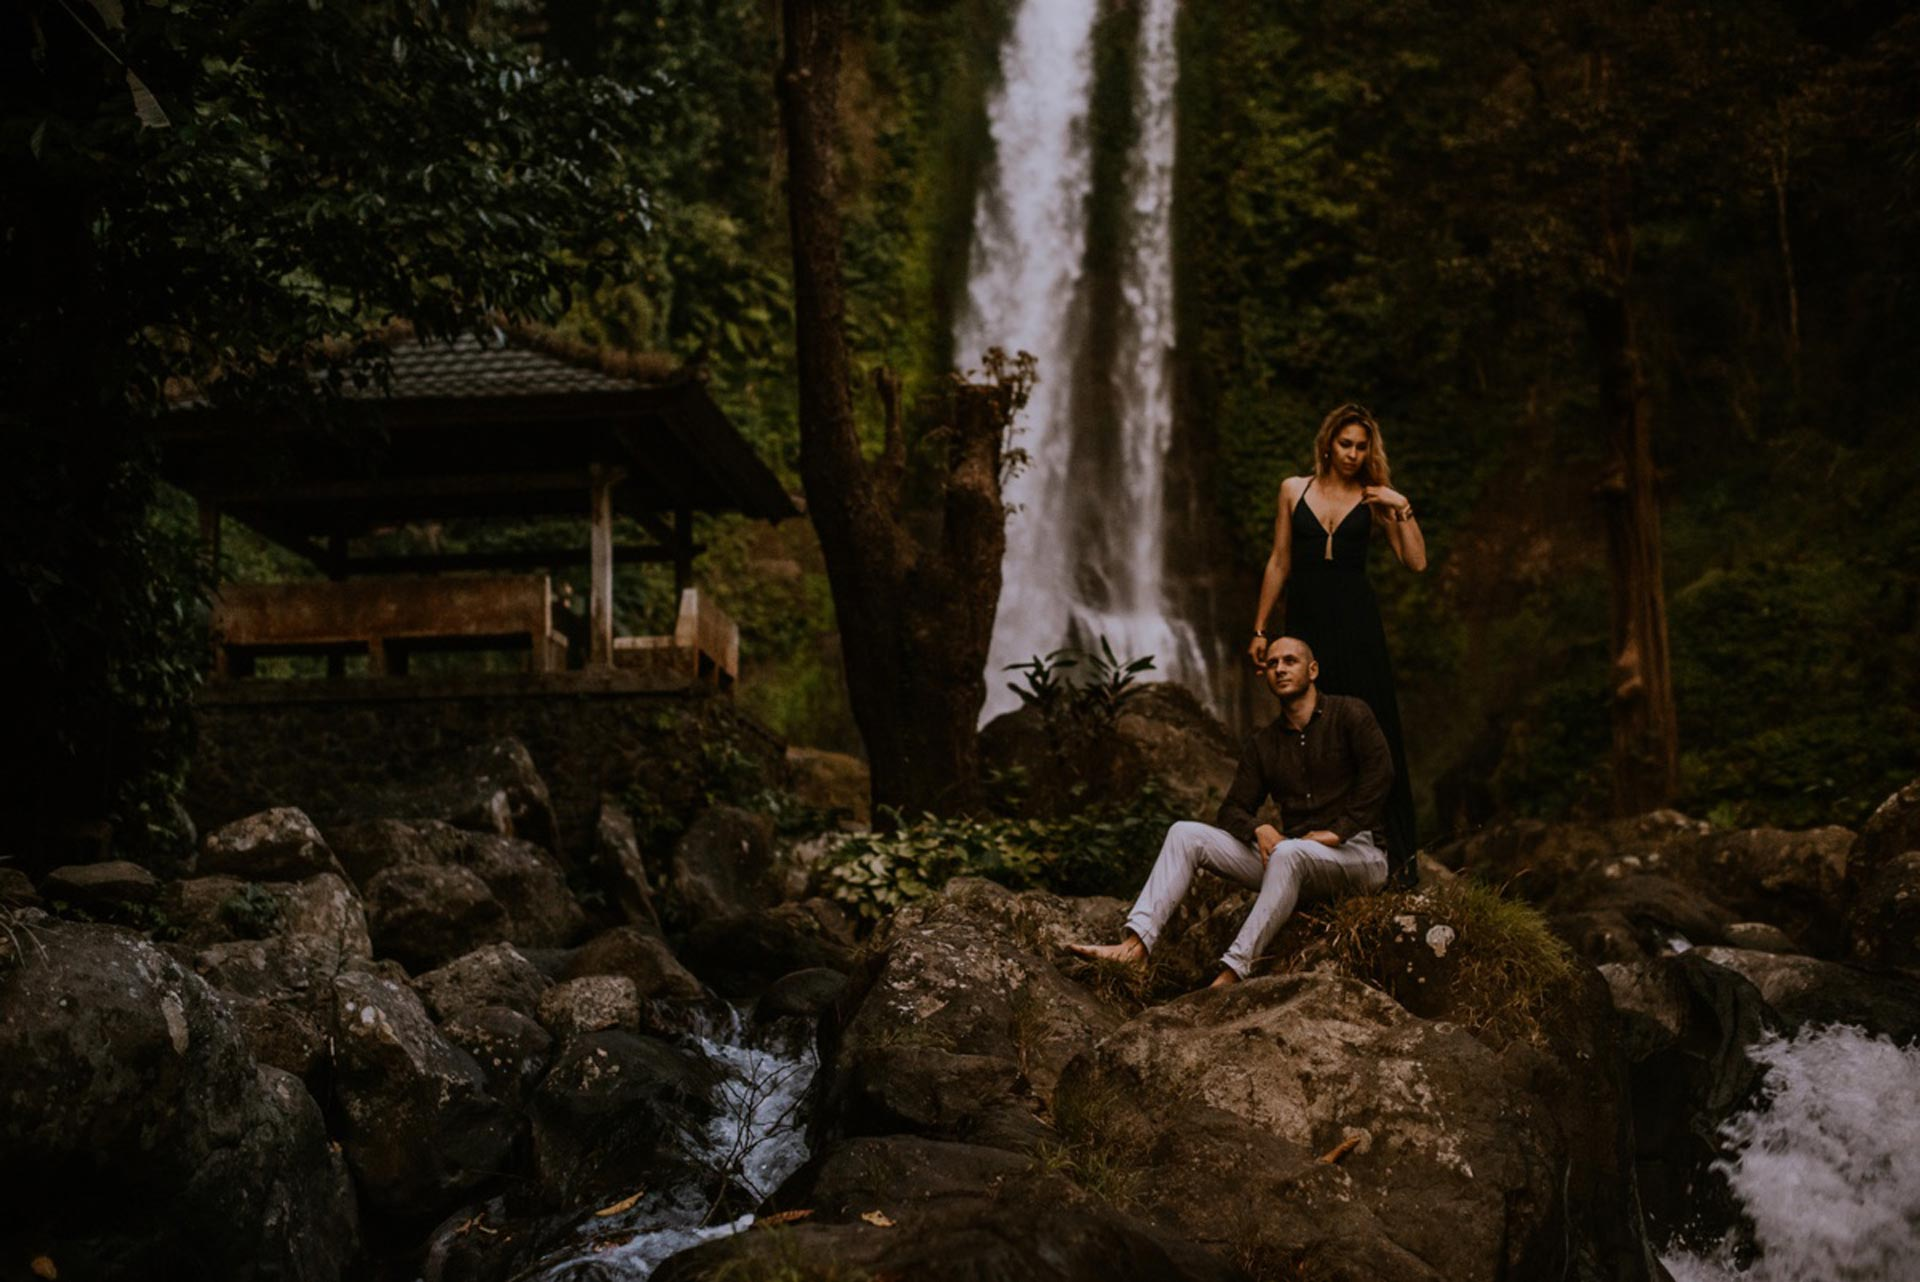 Bali preweding photoshoot couple Indonesia wedding photographer